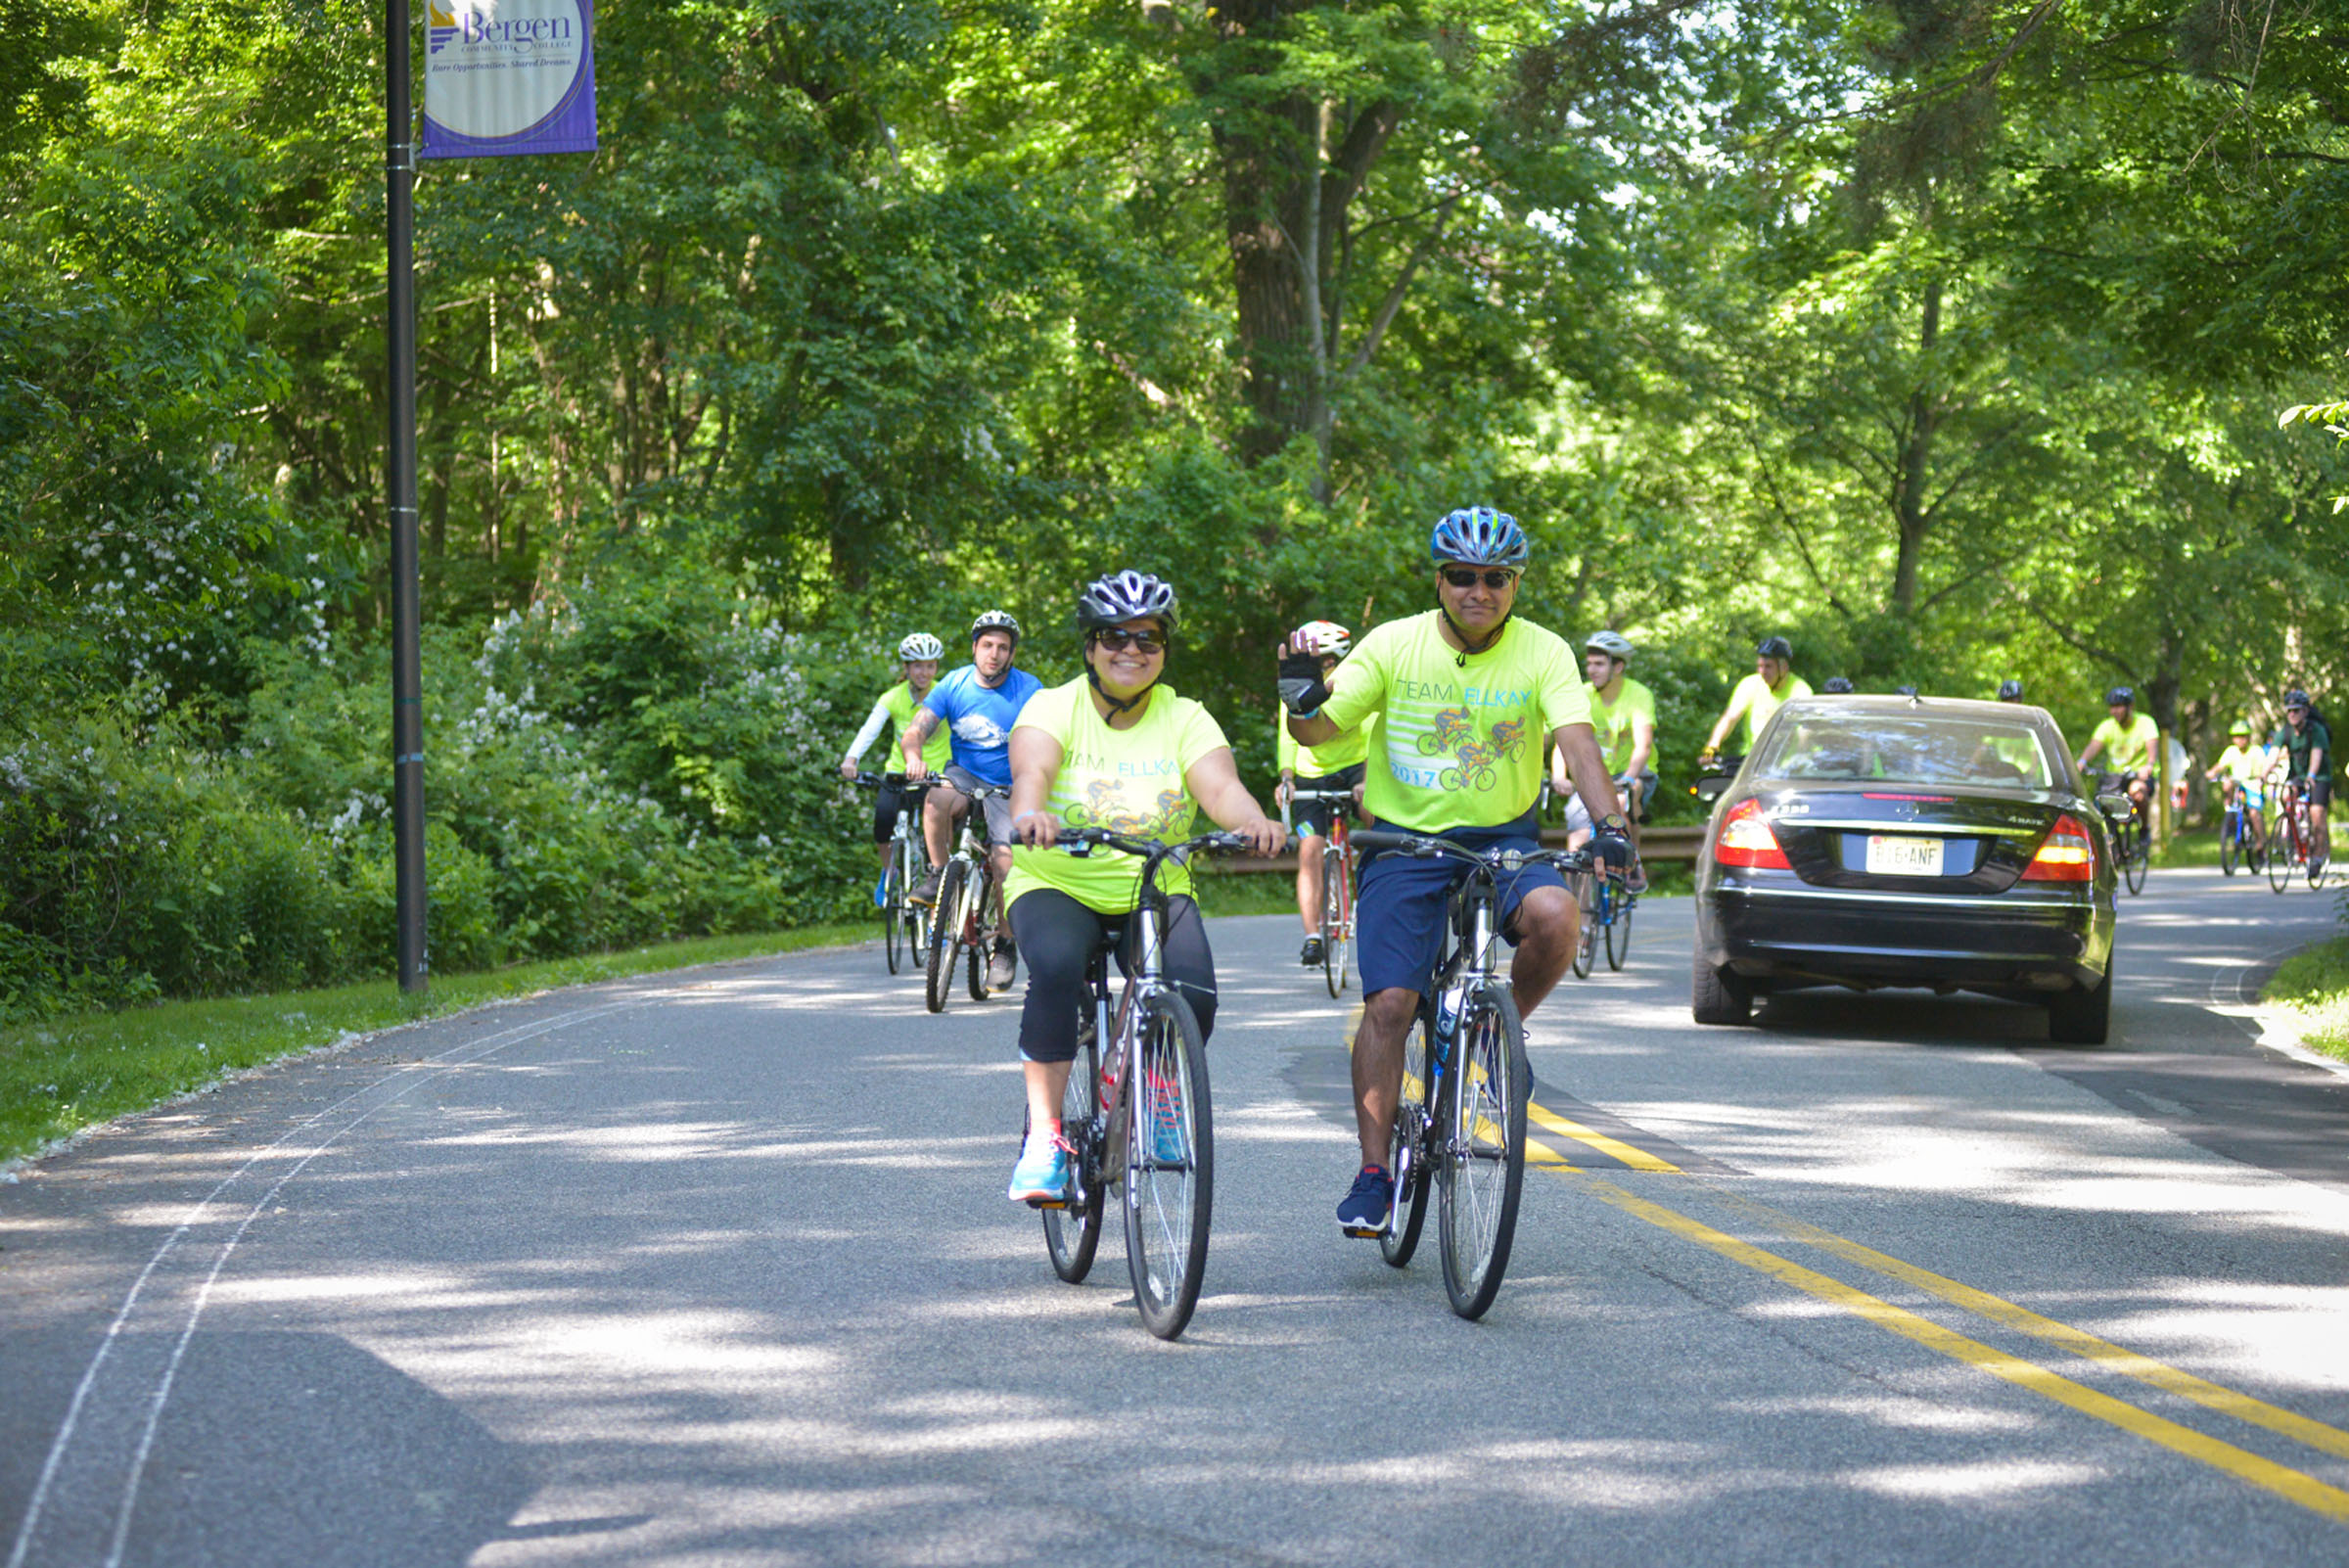 2017-06-04 GTD4A Charity Bike Ride - BCC - Paramus NJ-1950.jpg